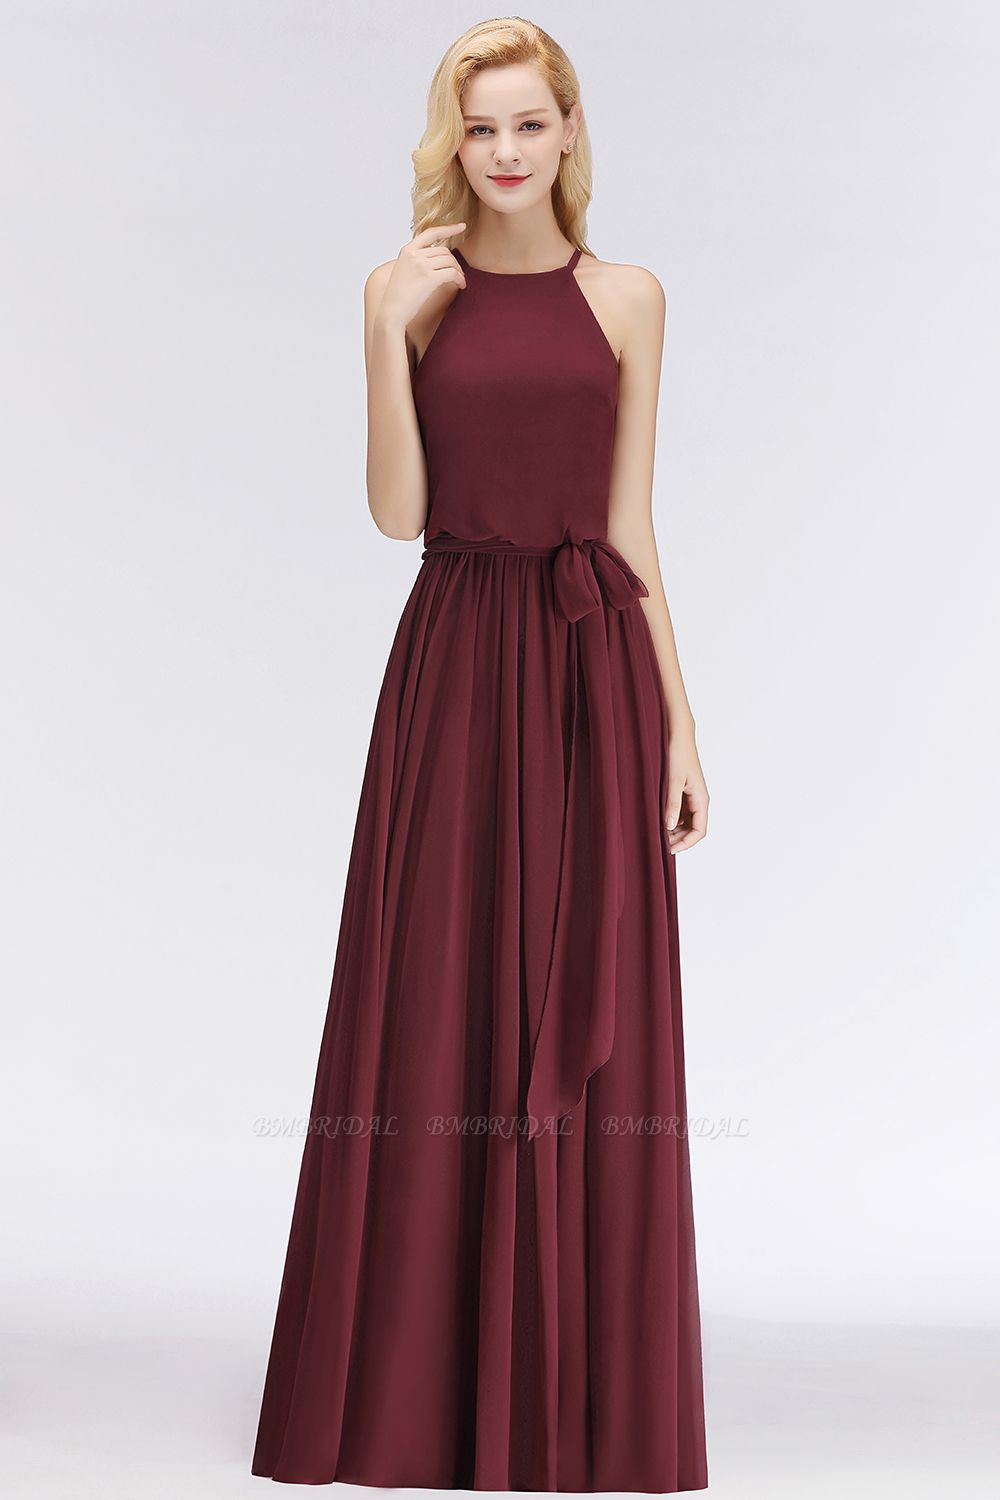 BMbridal Affordable Halter Bow Long Bridesmaid Dress Modest Burgundy Chiffon Wedding Party Dress